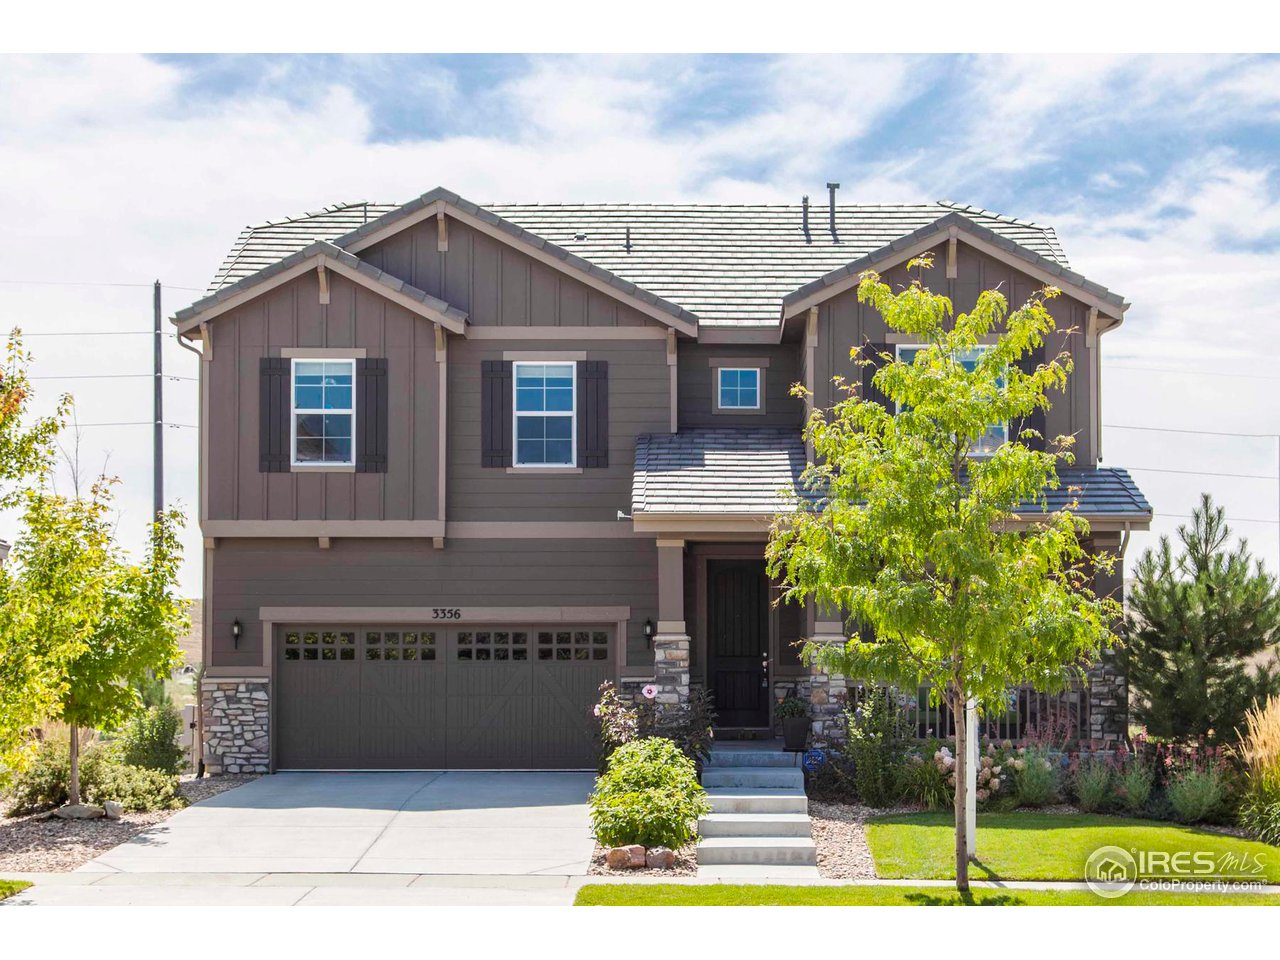 3356 Yale Dr, Broomfield CO 80023